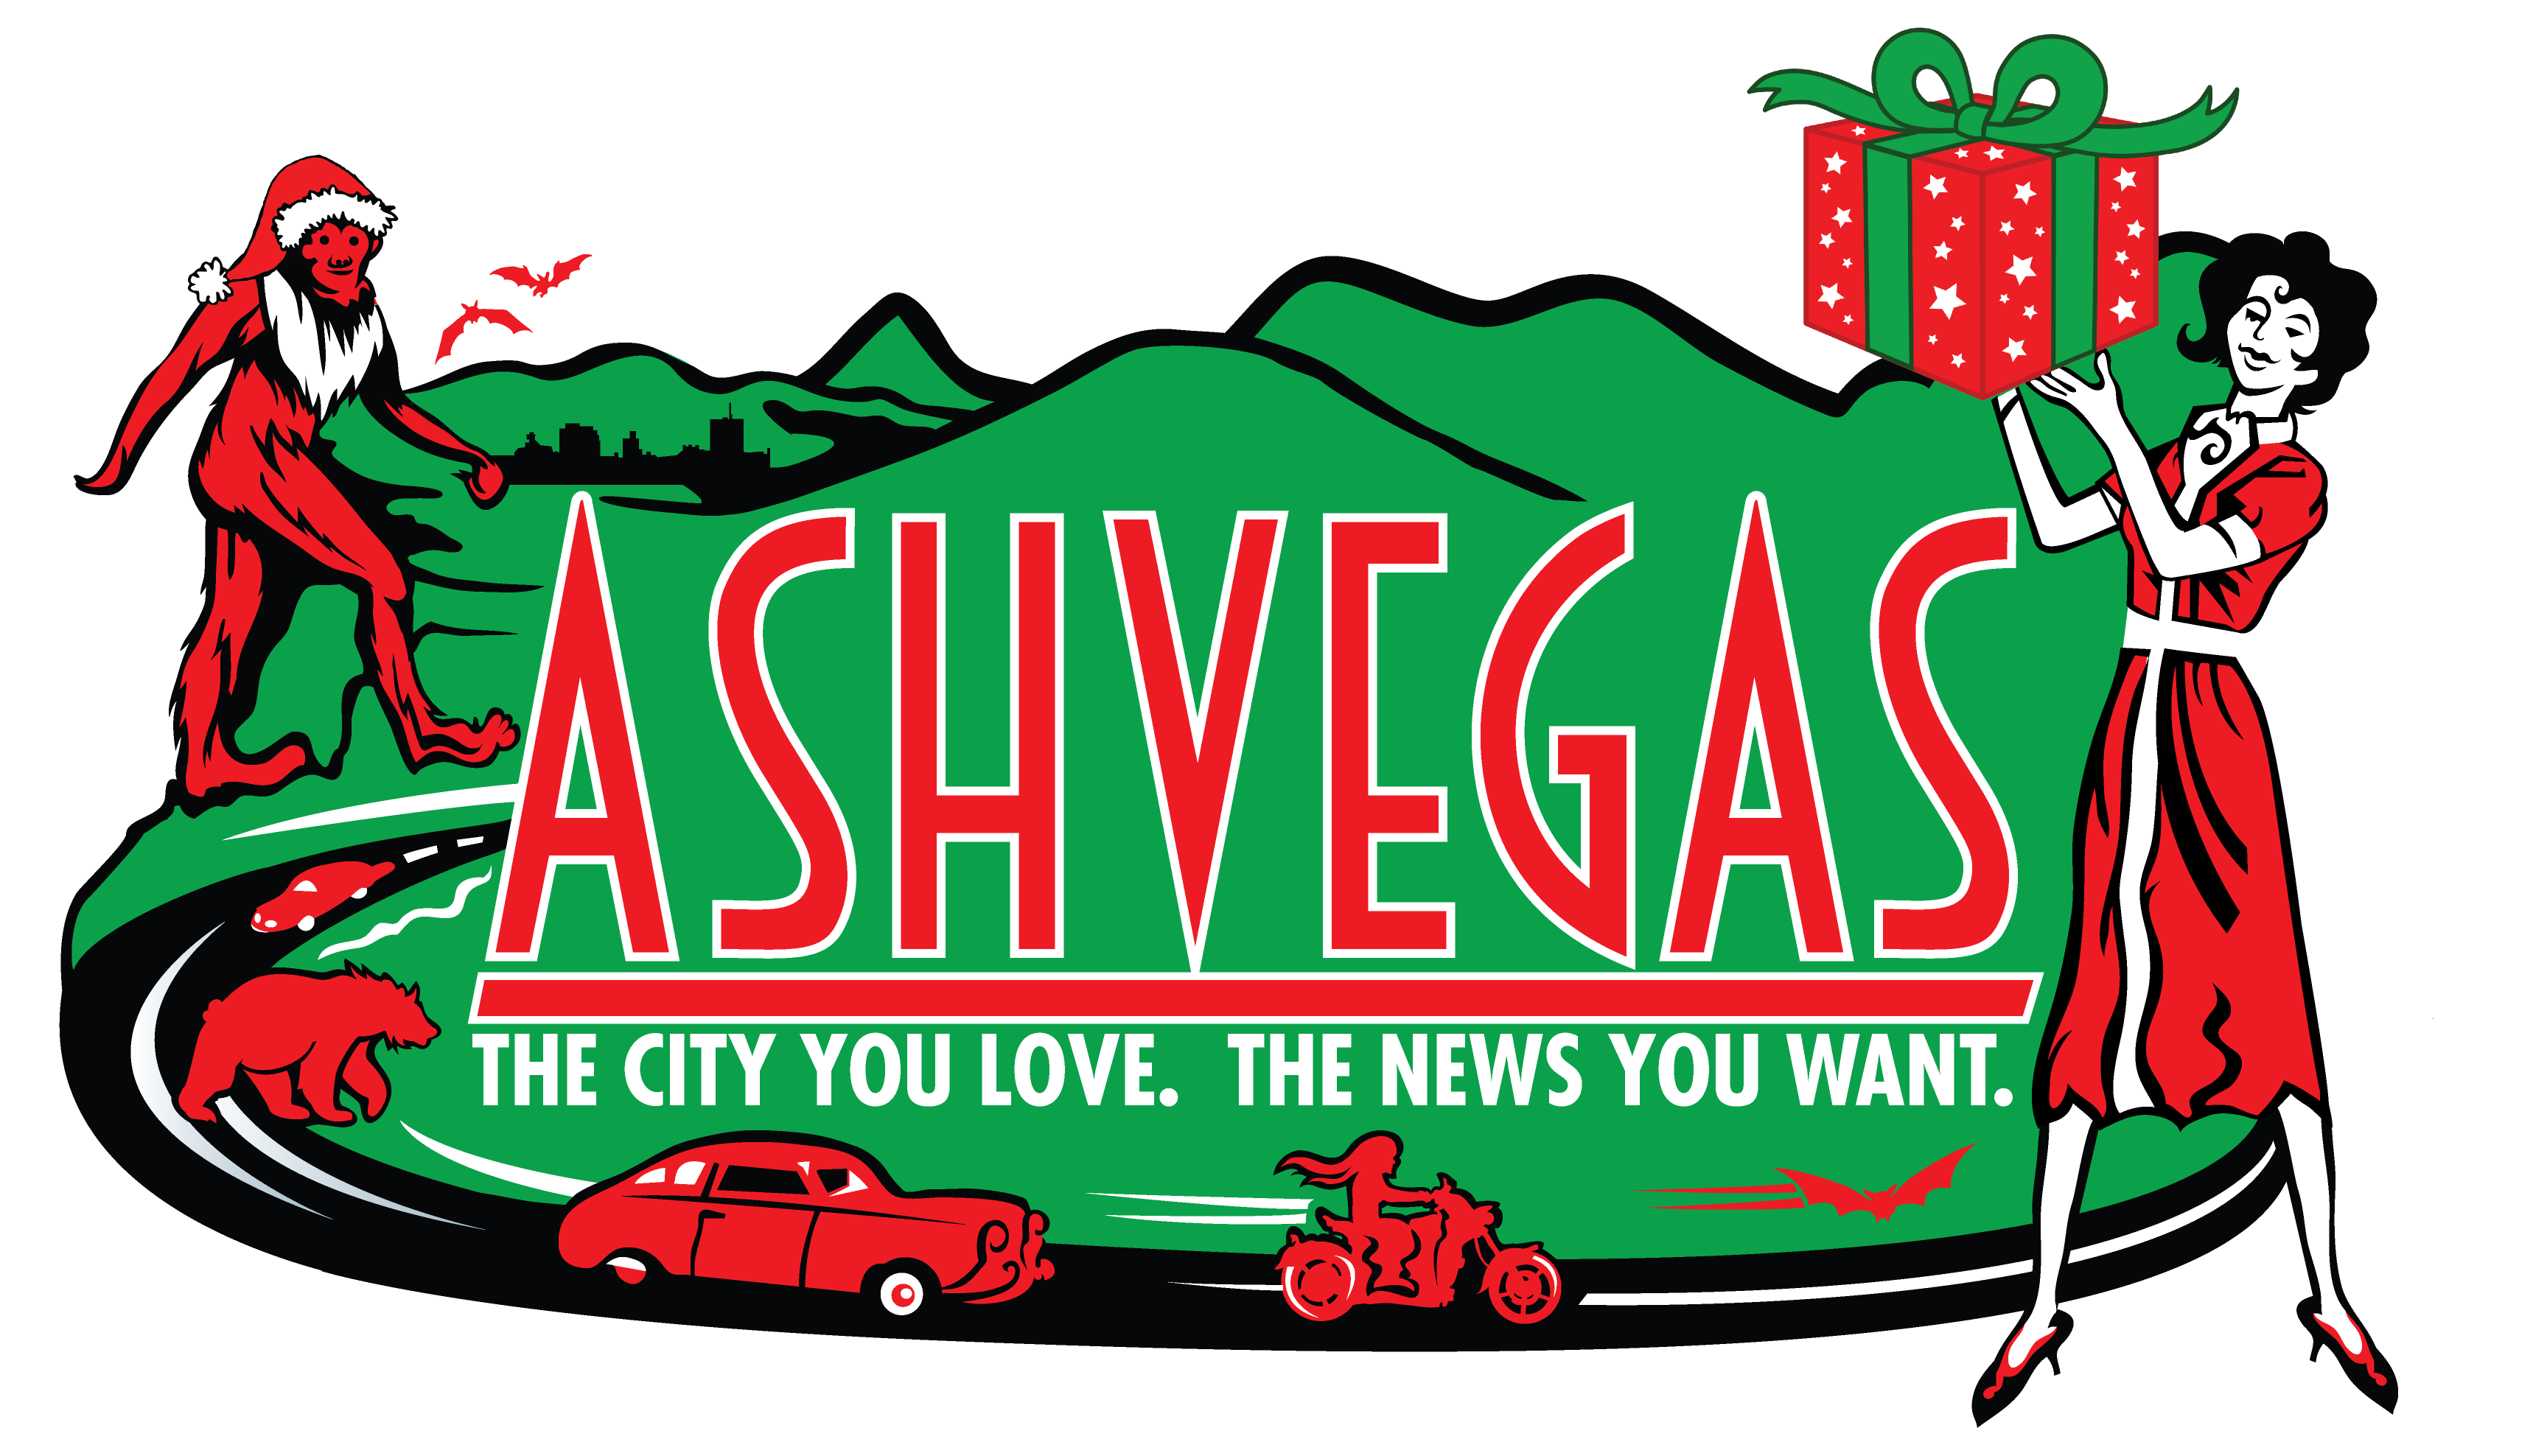 Ashvegas - The city you love. The news you want.